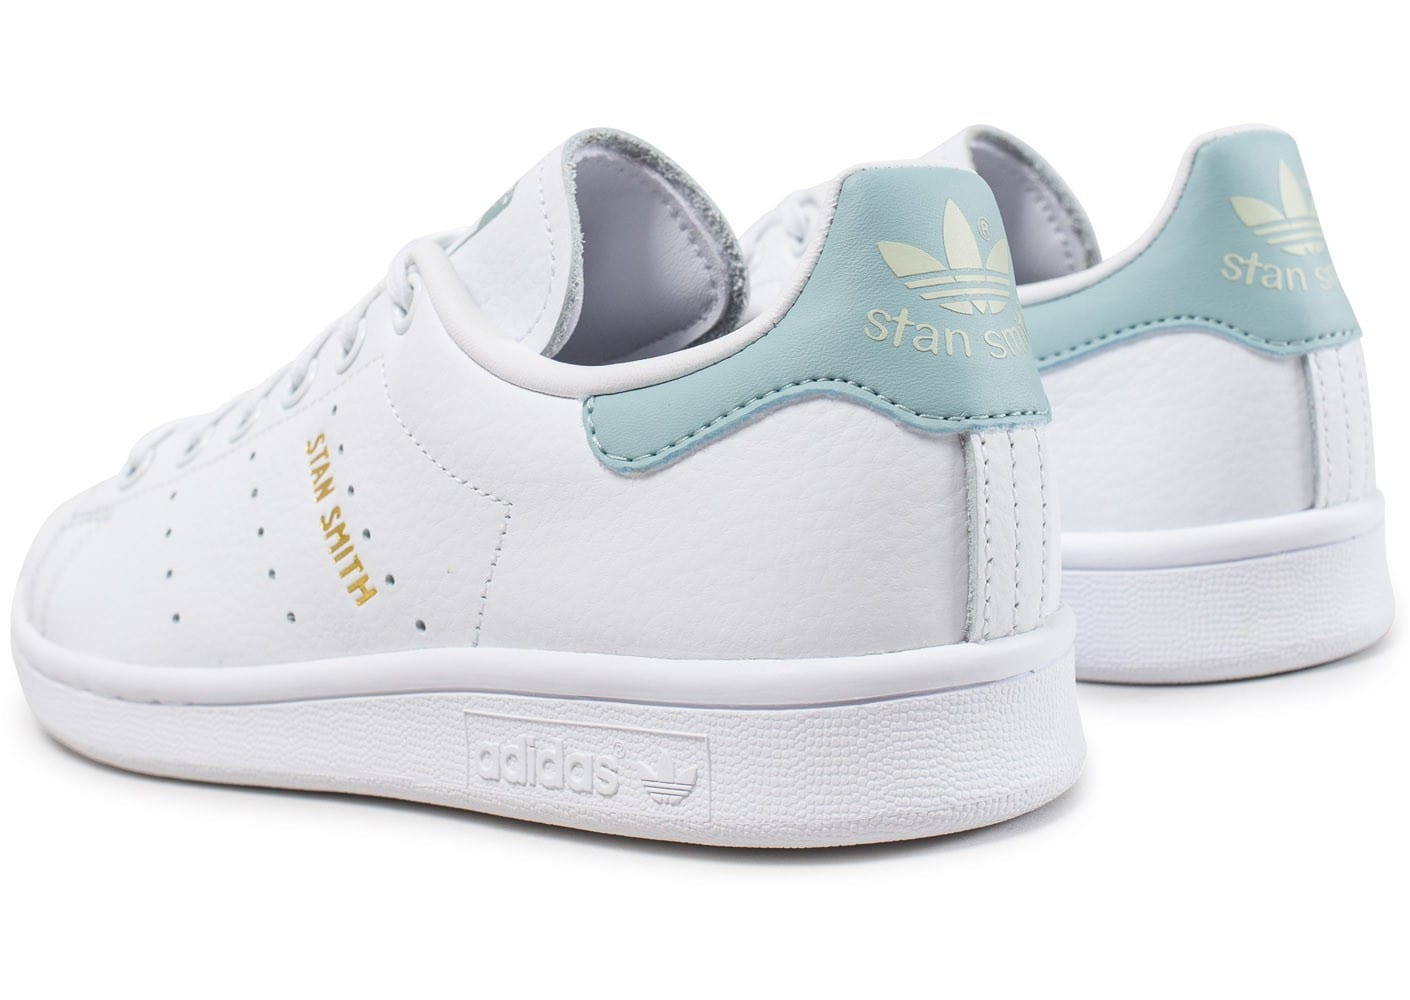 adidas stan smith junior blanche et bleu turquoise chaussures adidas chausport. Black Bedroom Furniture Sets. Home Design Ideas